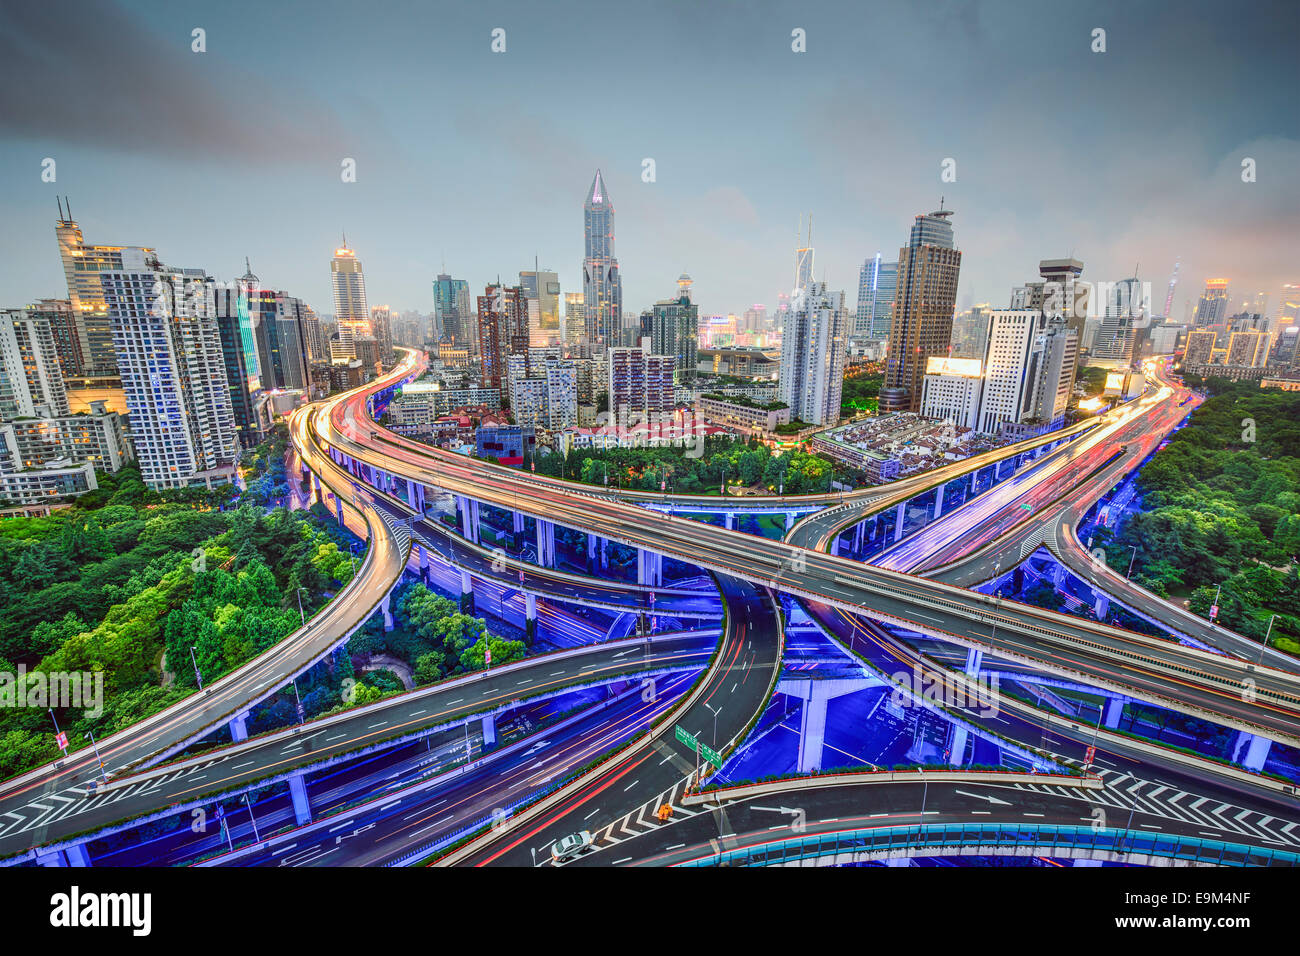 Shanghai, China cityscape obove highway junctions. - Stock Image